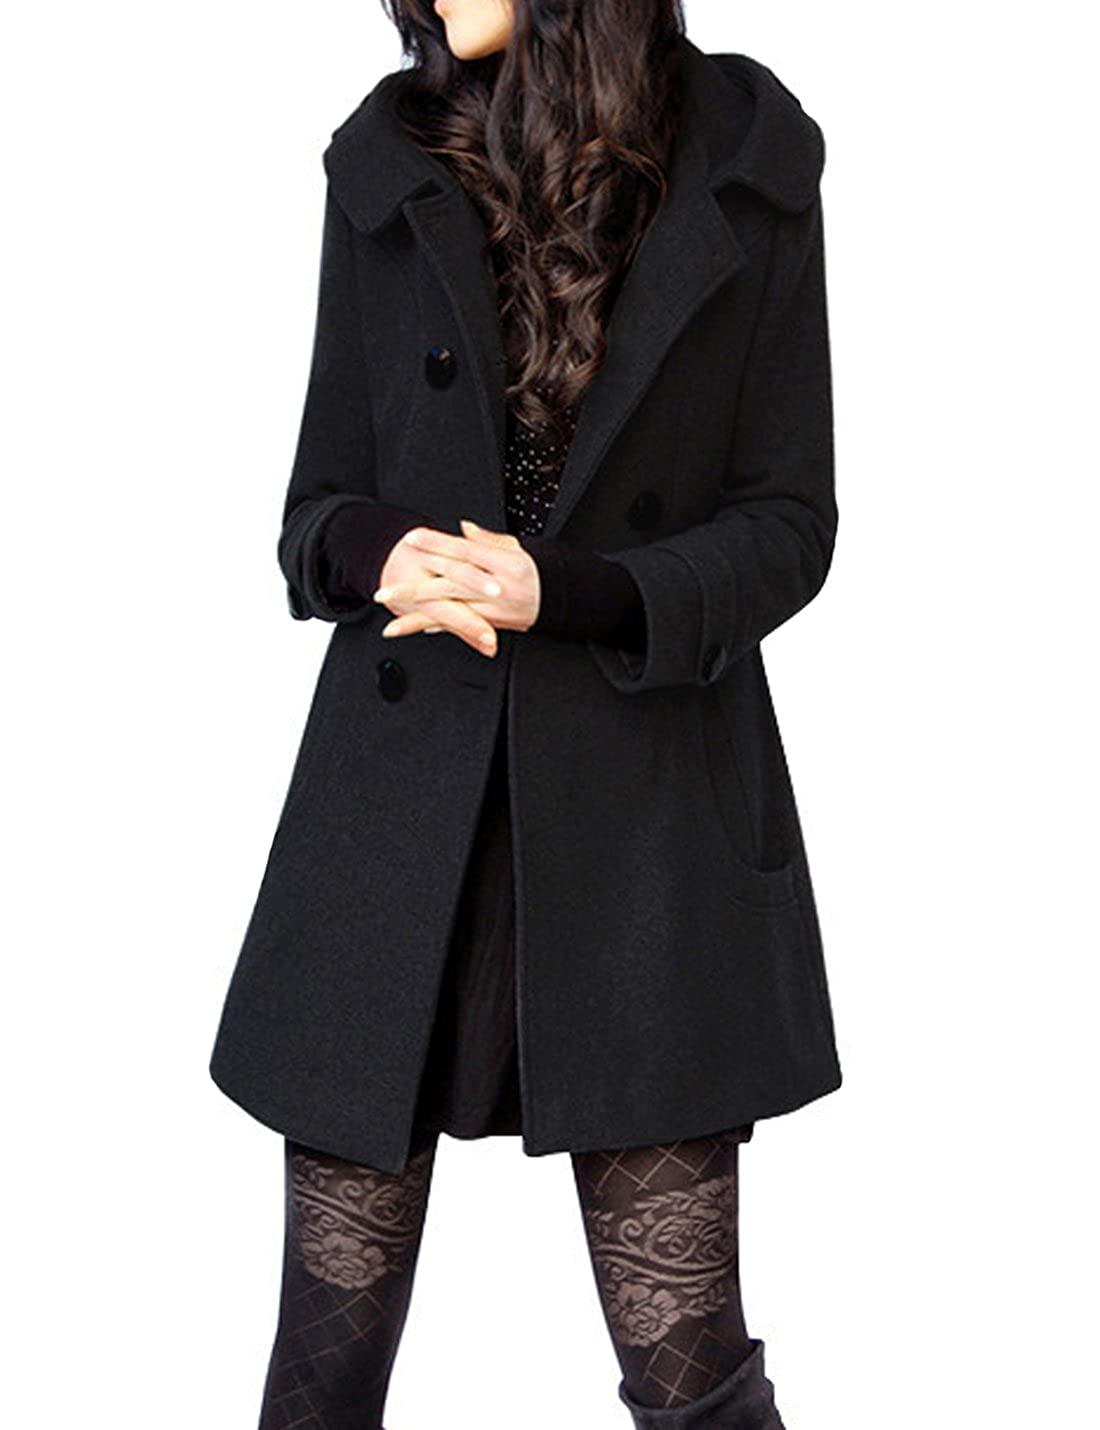 ee5713f6bfb Amazon.com  Tanming Women s Winter Double Breasted Wool Blend Long Pea Coat  with Hood  Clothing